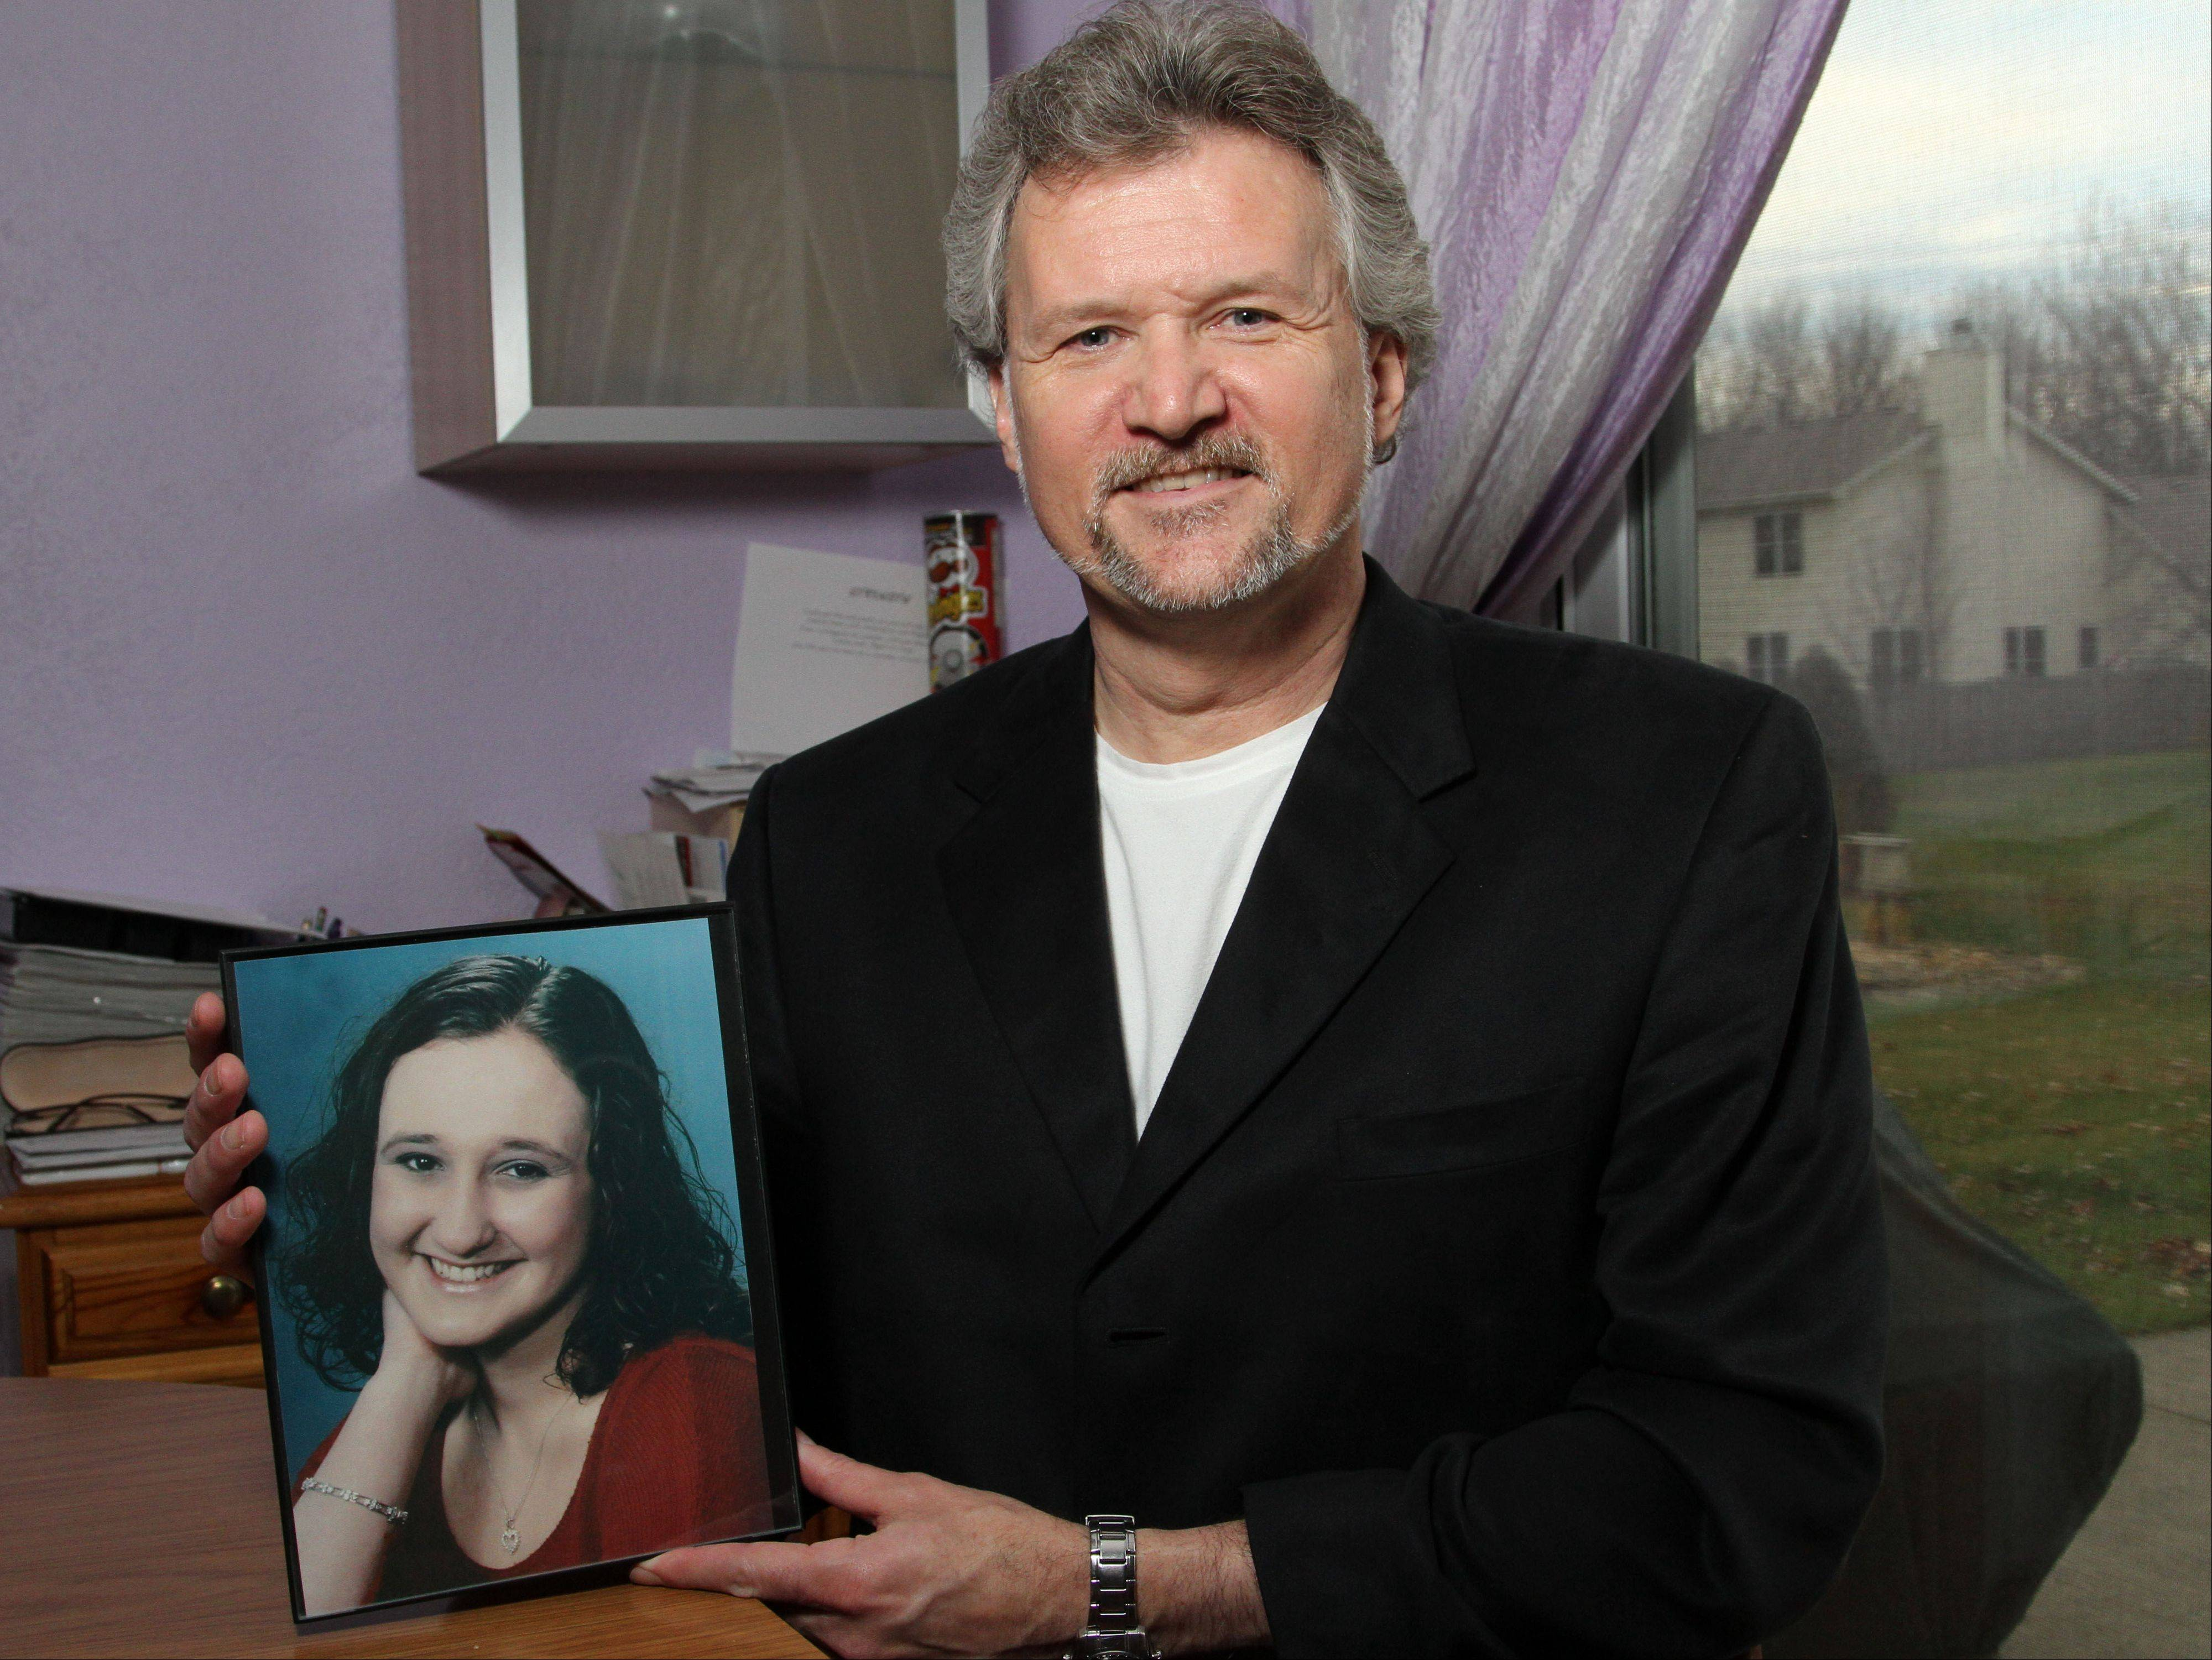 Gurnee resident Jim Stanislawski holds a picture of his late daughter Jackie, who was killed in a 2003 auto accident. For the last eight years Stanislawski has staged annual magic shows that double as food drives in honor his late daughter.